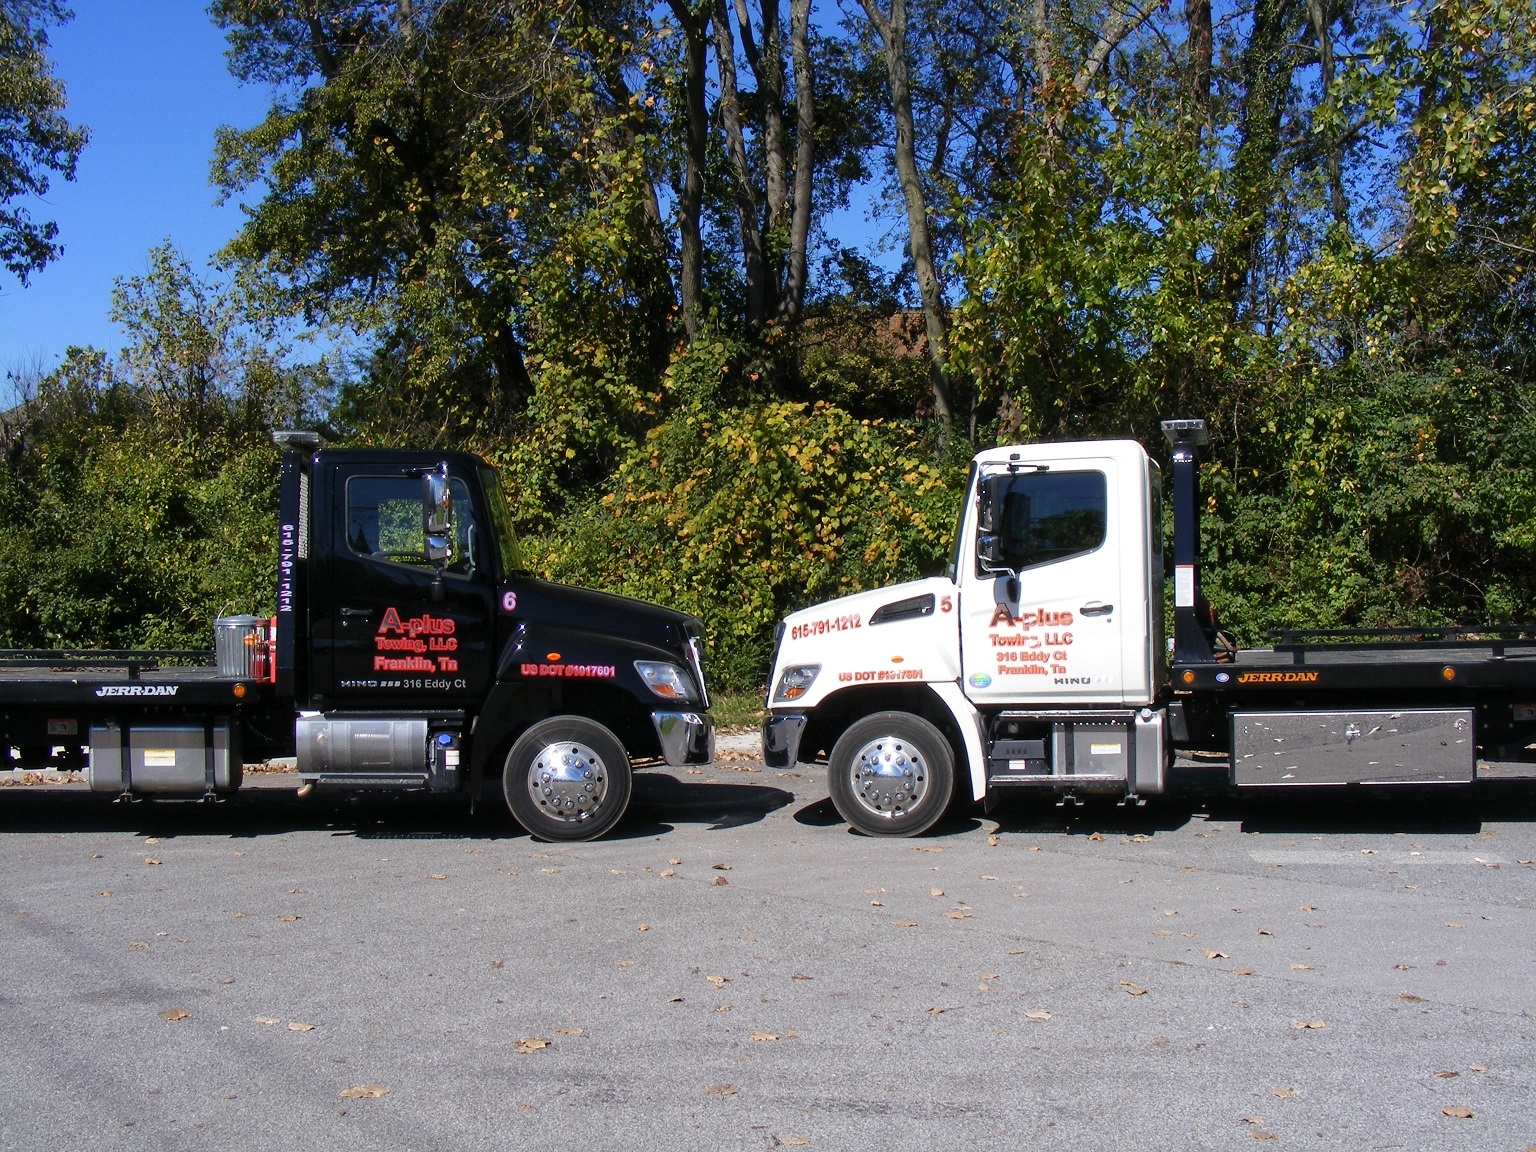 a-plus-towing-tow-truck-a